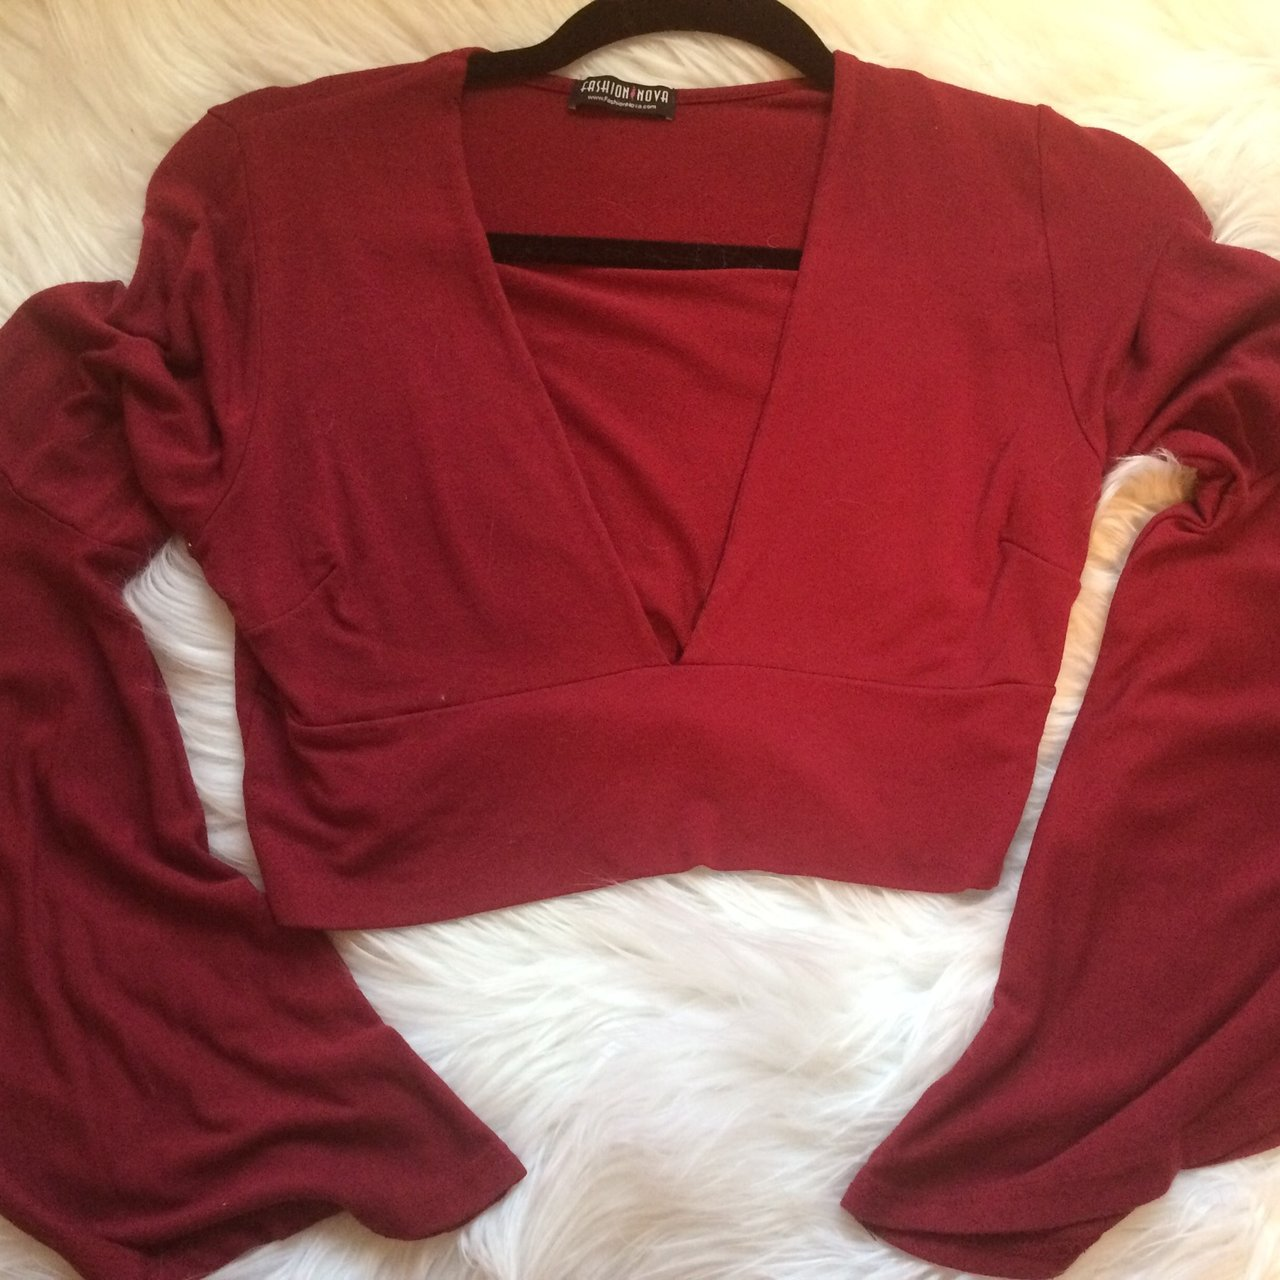 37e5a22746a Red bell sleeved top from fashion nova. Deep v neck top. M. - Depop